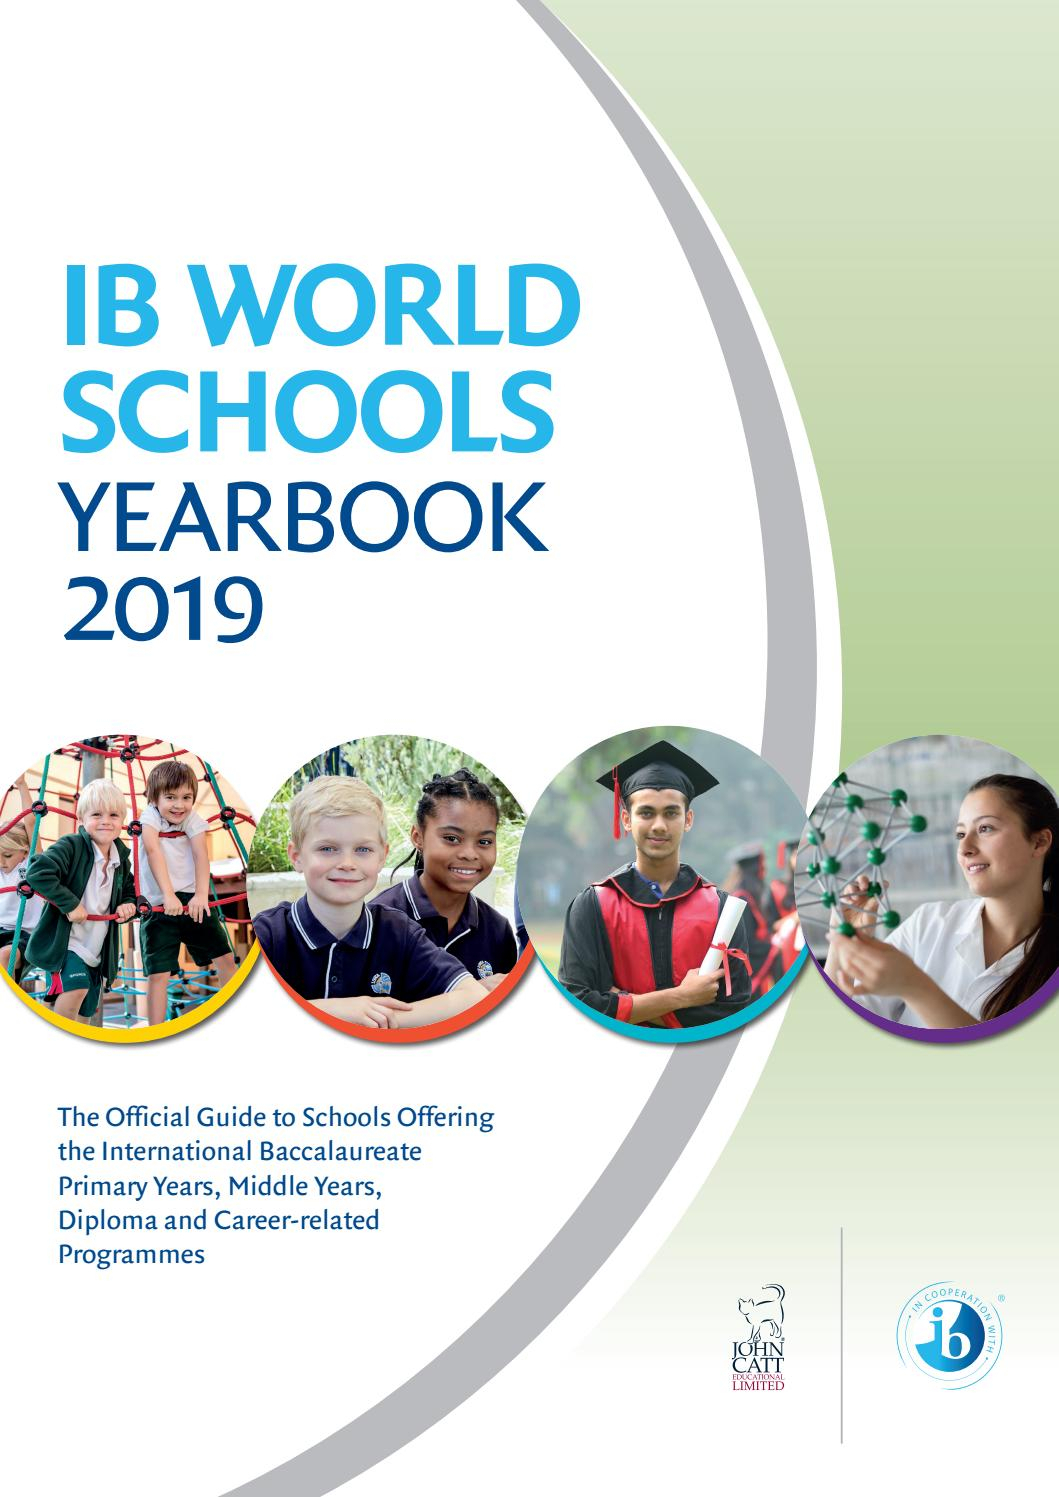 Ib World Schools Yearbook 2019 By John Catt Educational  Issuu regarding Oeiras International School Calendar